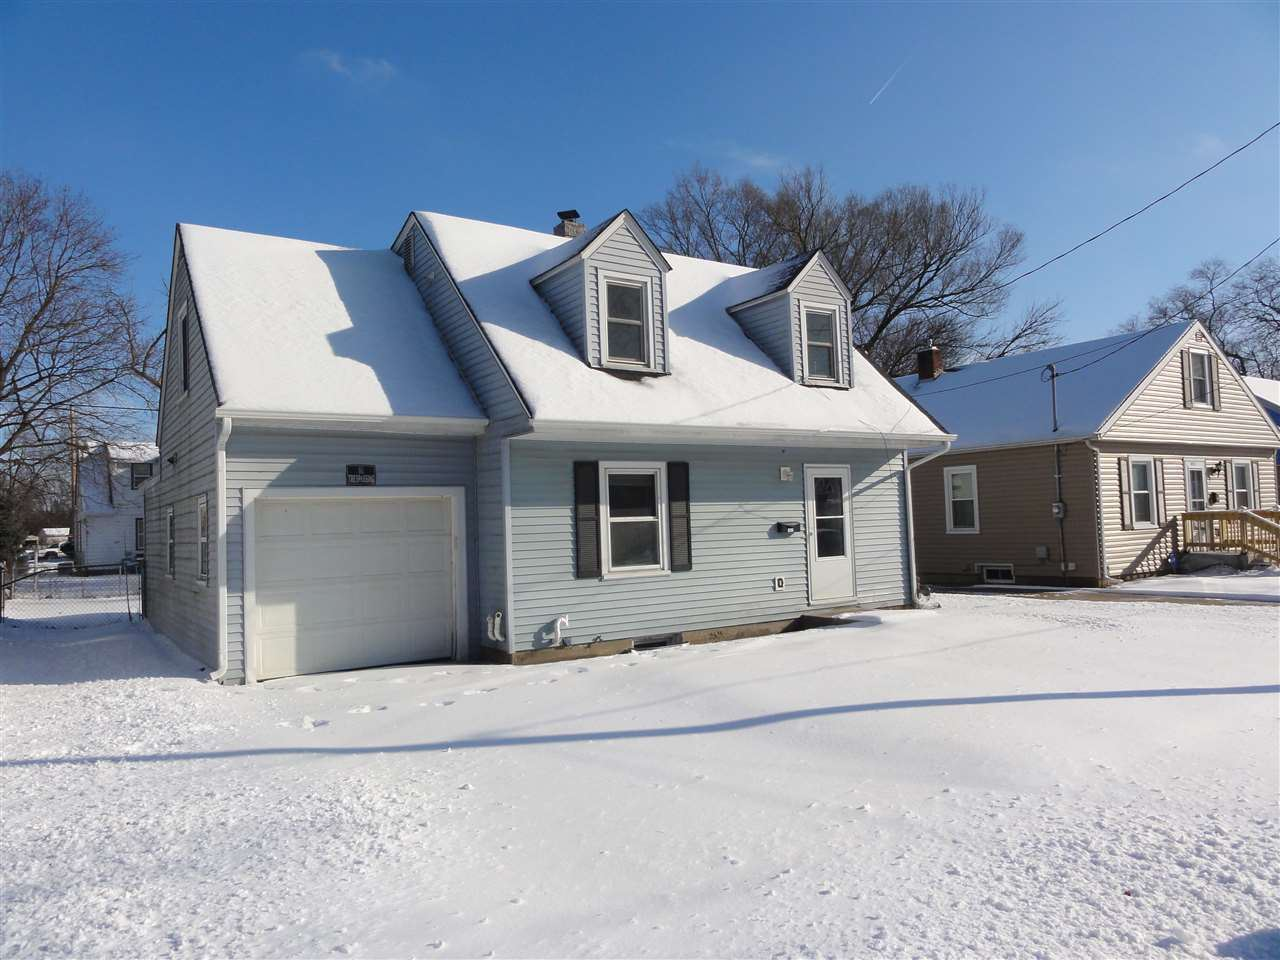 1623 Royce Ave, Beloit, WI 53511 - #: 1875401